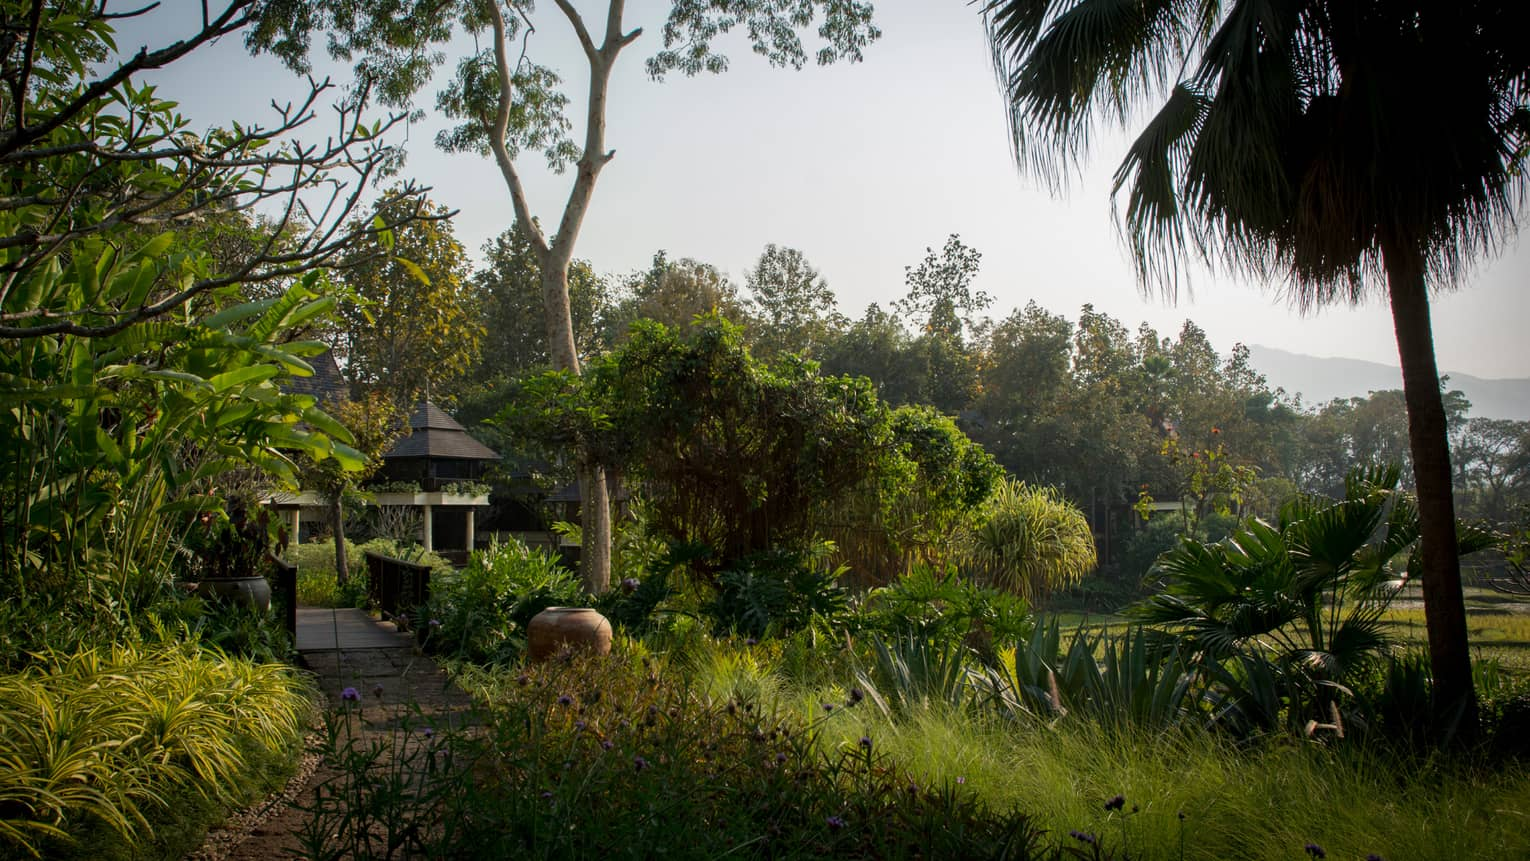 Building visible at end of pathway through tropical gardens, plantation, trees